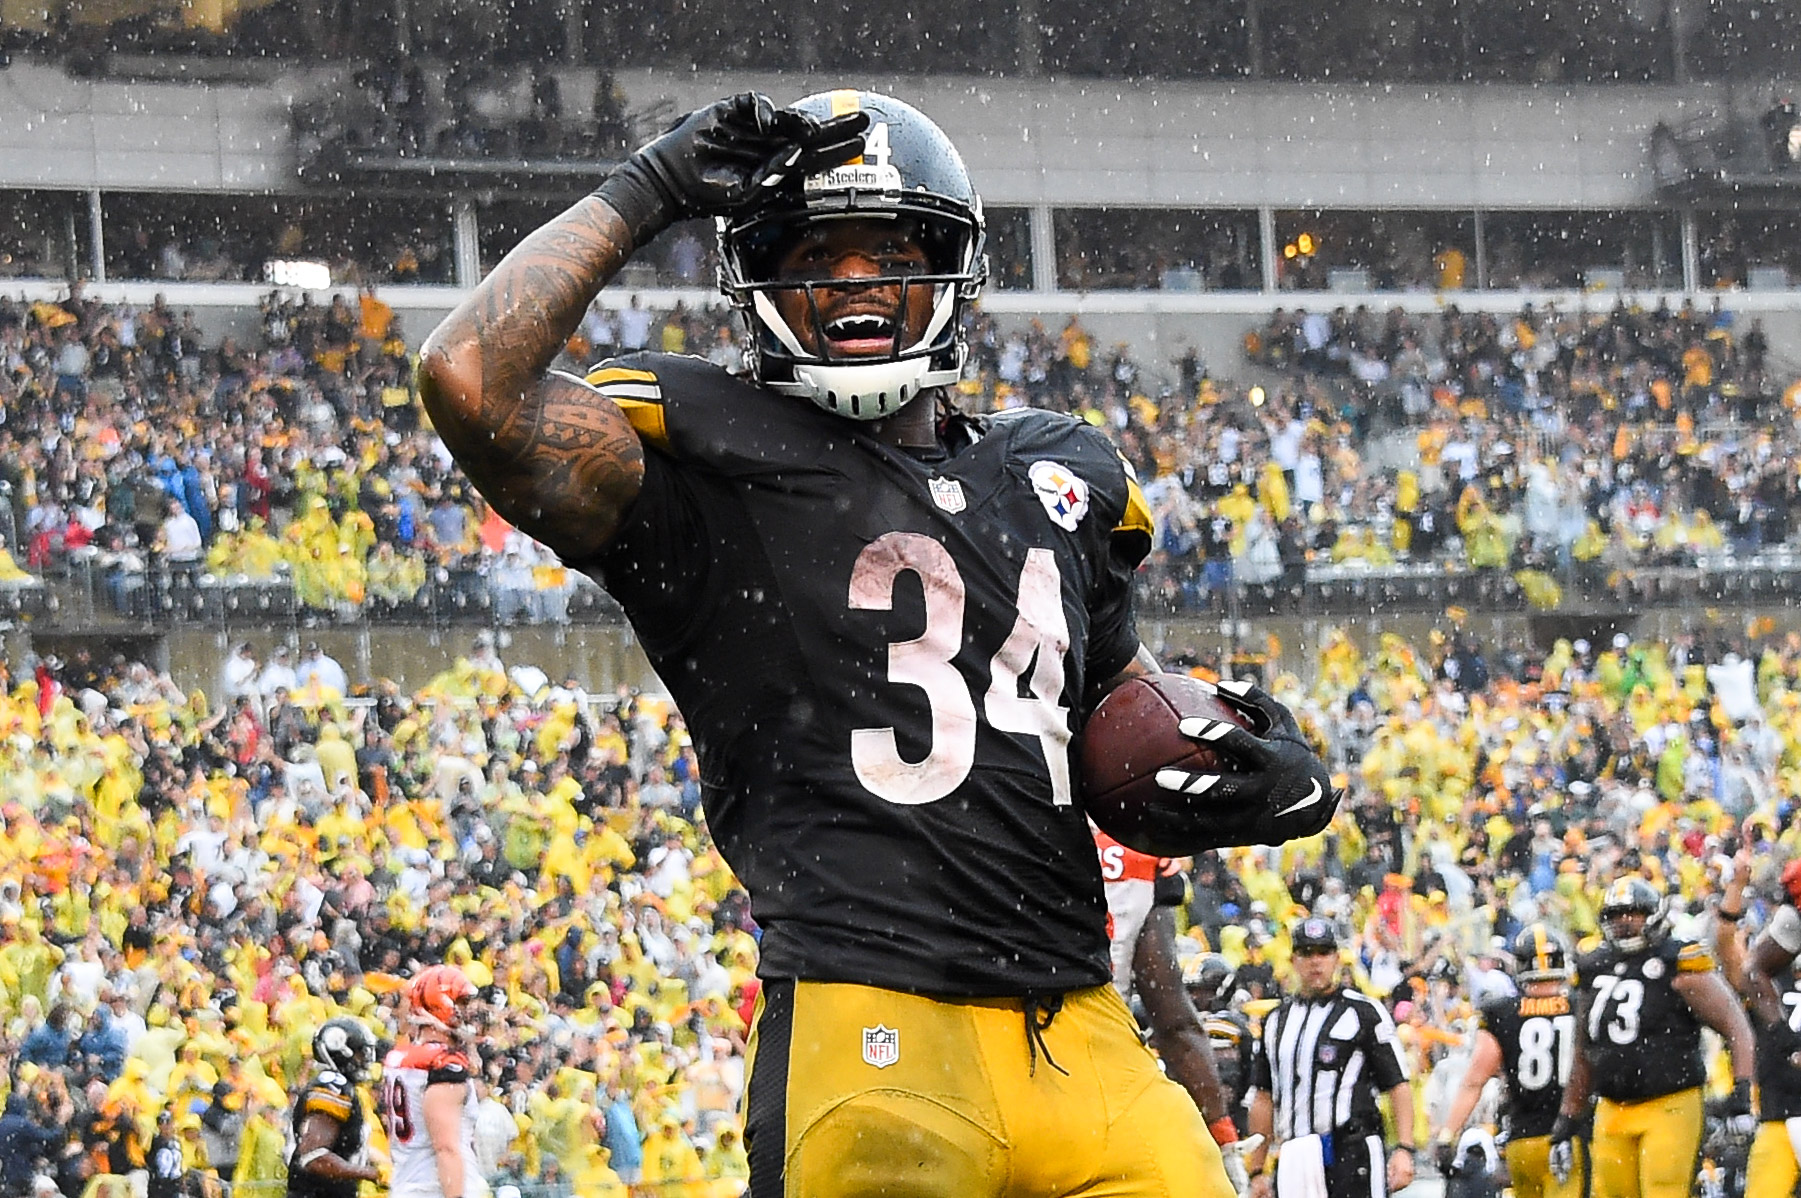 Free agent RB DeAngelo Williams rips Cowboys, fans: 'They always disappear in the playoffs'